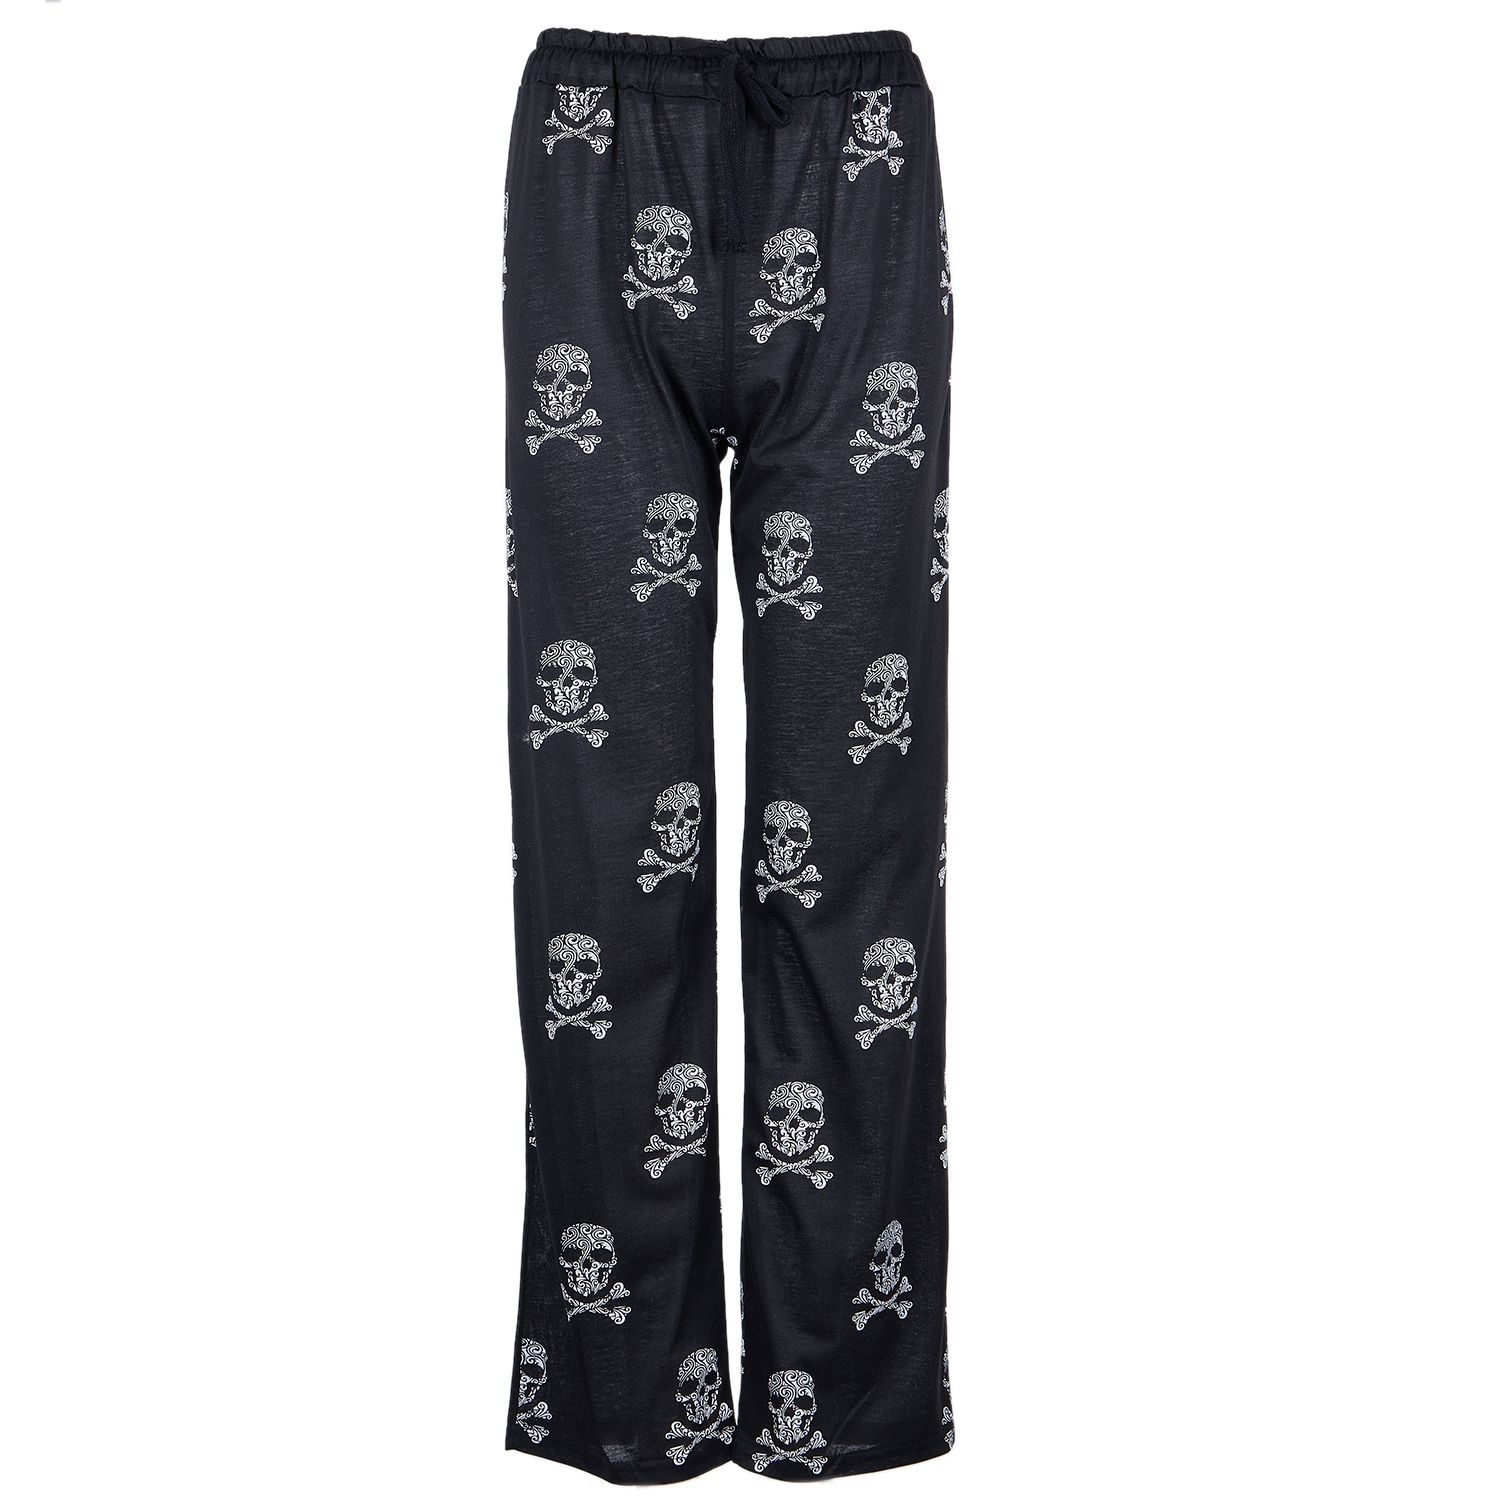 2018 Women Pants Casual Low Waist Flare Wide Leg Long Pants Palazzo Trousers Skull Printed Pajama Pants